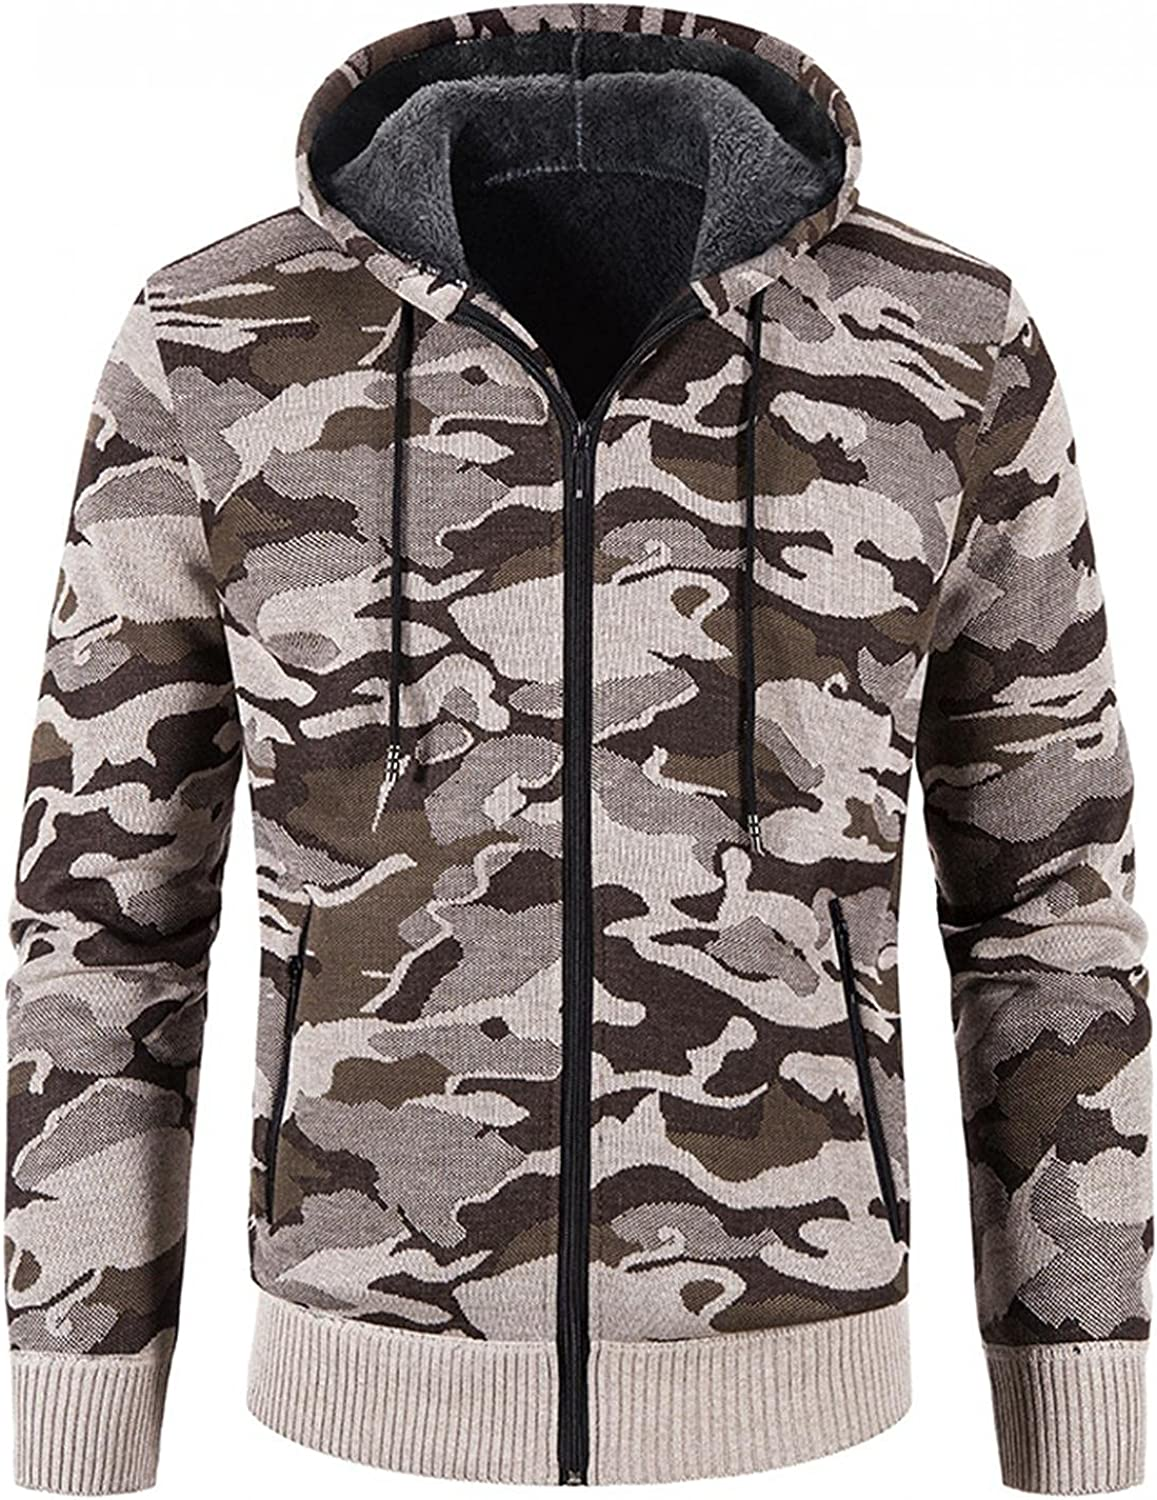 Aayomet Men's Hoodies Cardigan Winter Warm Camouflage Zip Long Sleeve Casual Hooded Pullover Tops Blouses Coat with Pockets